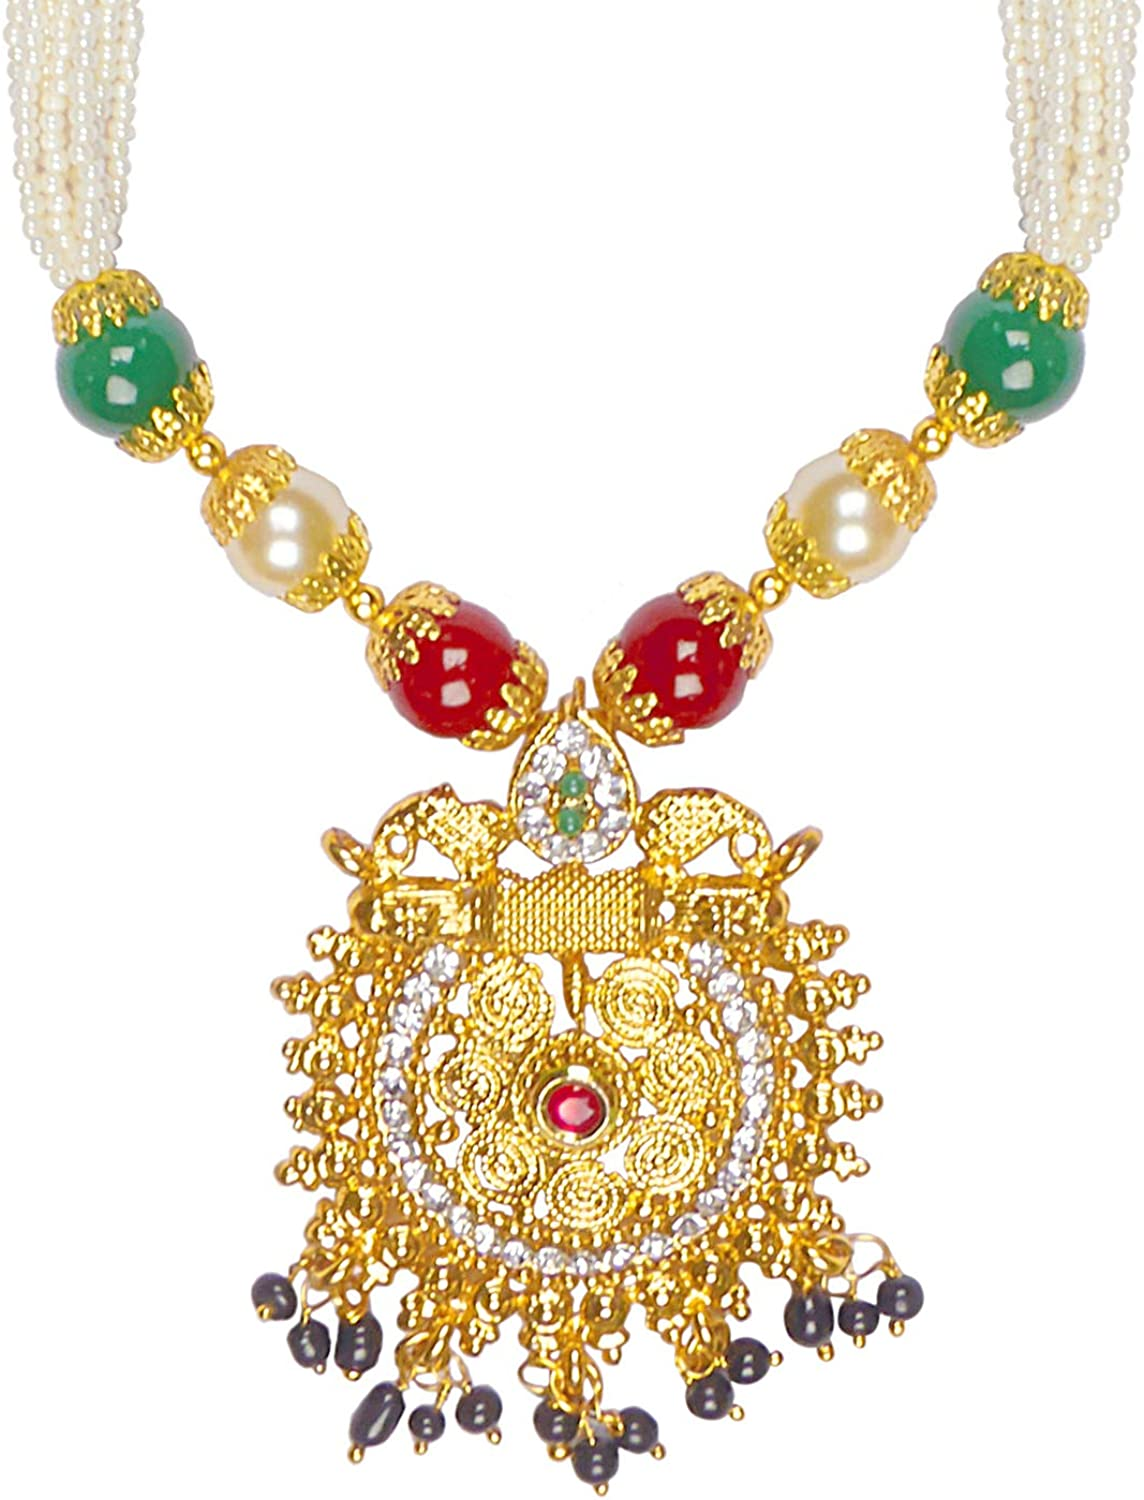 Bodha Traditional Indian Handcrafted 22K Gold Plated Designer Fancy Mangalsutra Thushi mala Necklace Pendant Set for Women (SJ_2818)